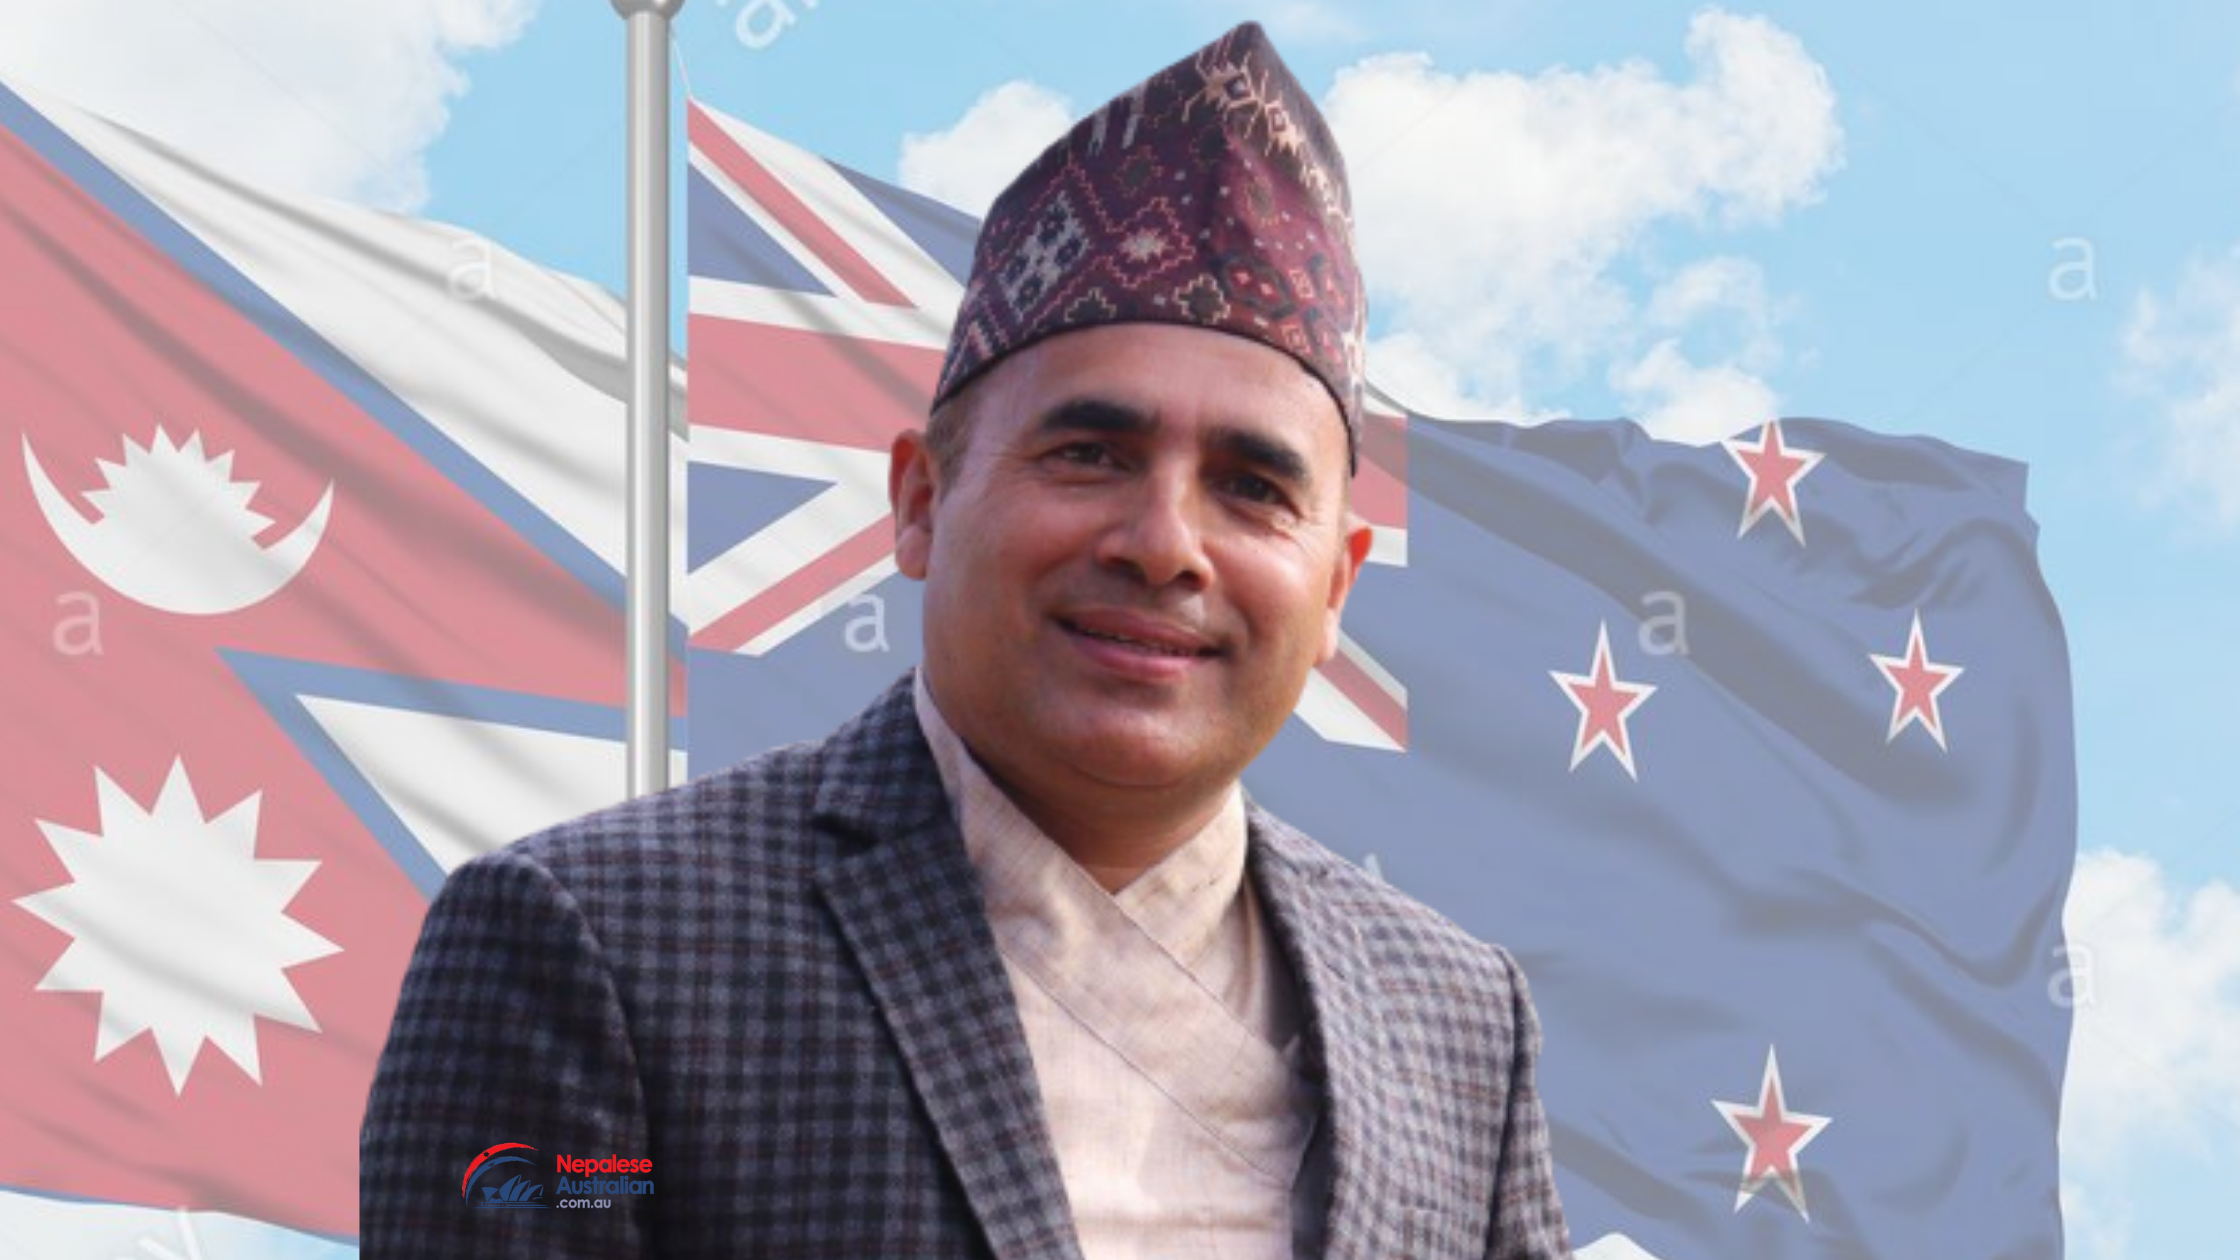 Atma Ram Khanal appointed as Consul General of Nepal New Zealand